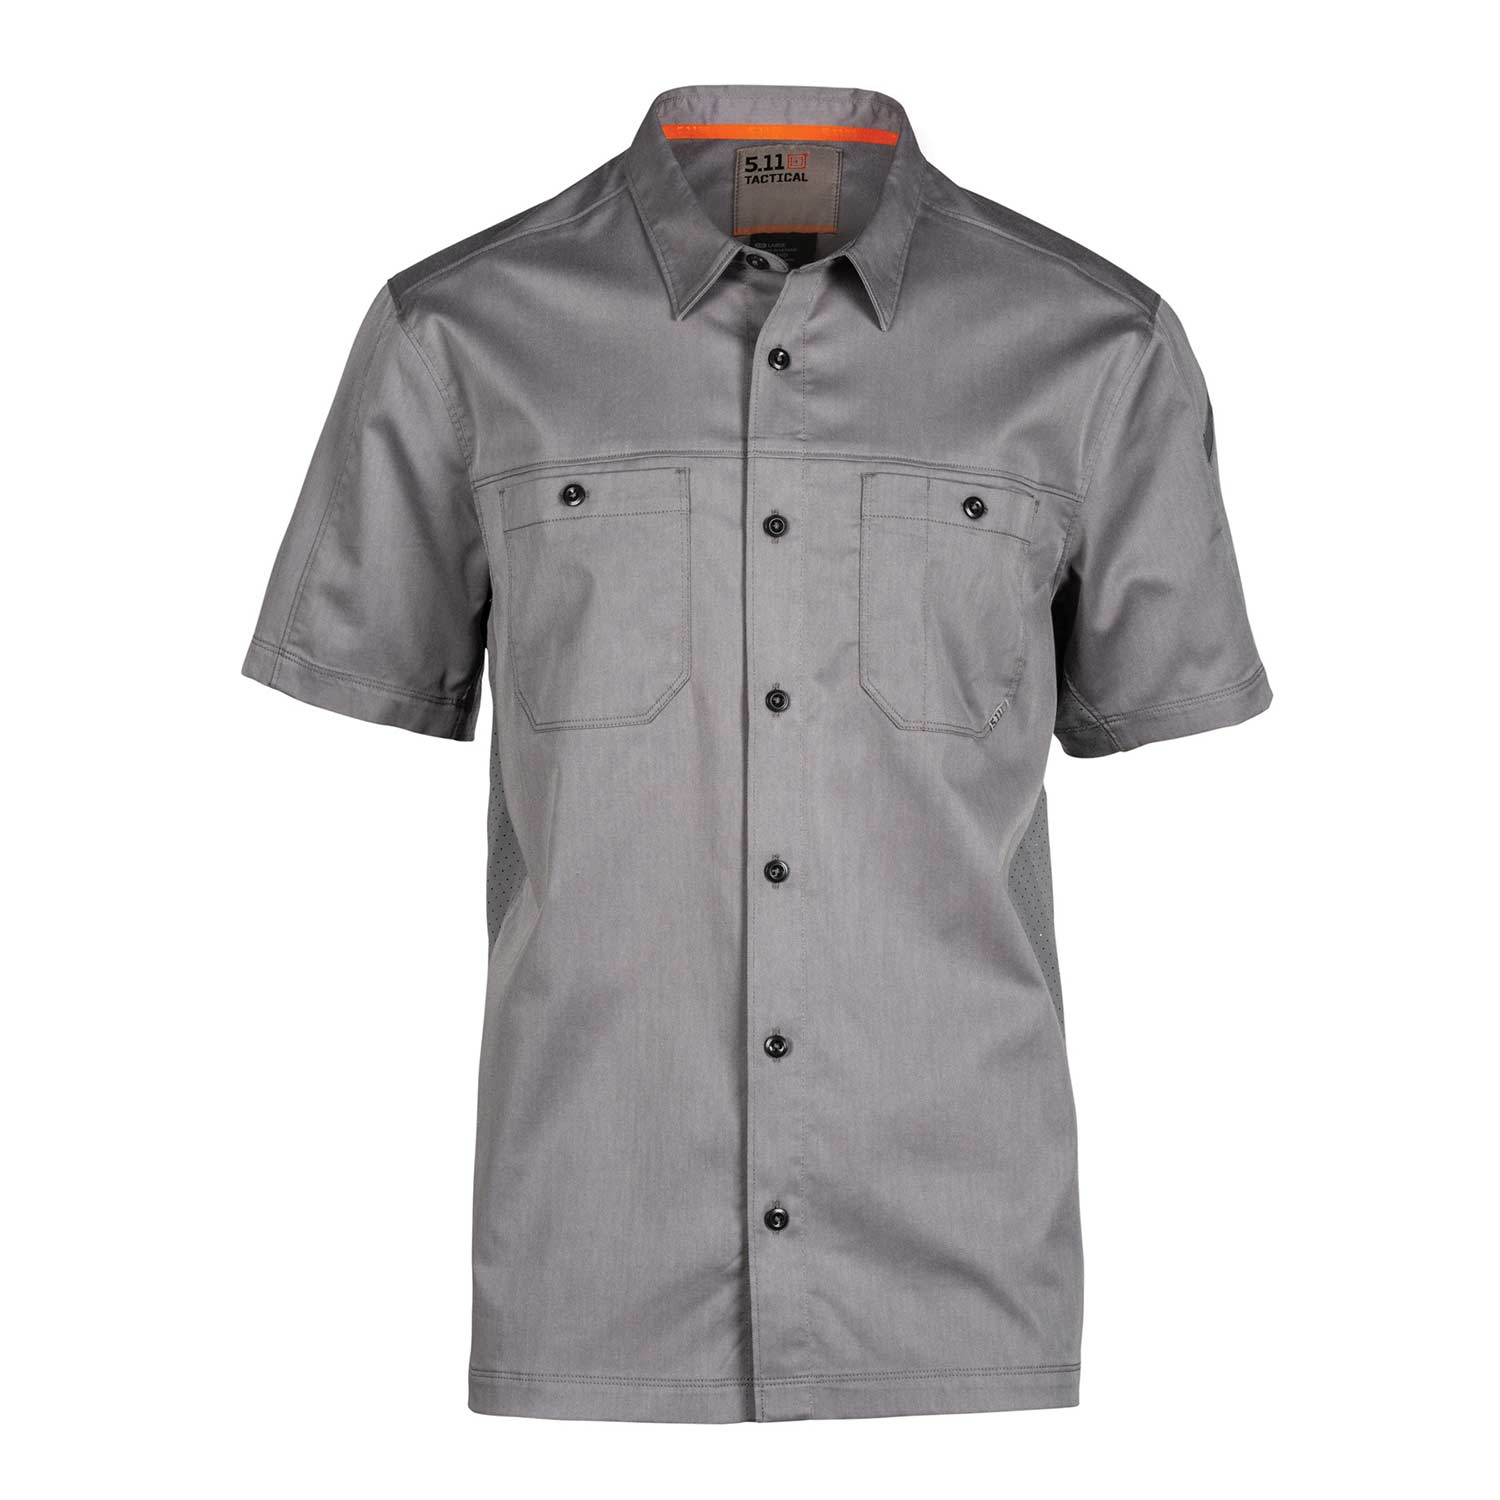 bc80a93a43502 5.11 Tactical Flex-Tac Twill Short Sleeve Shirt